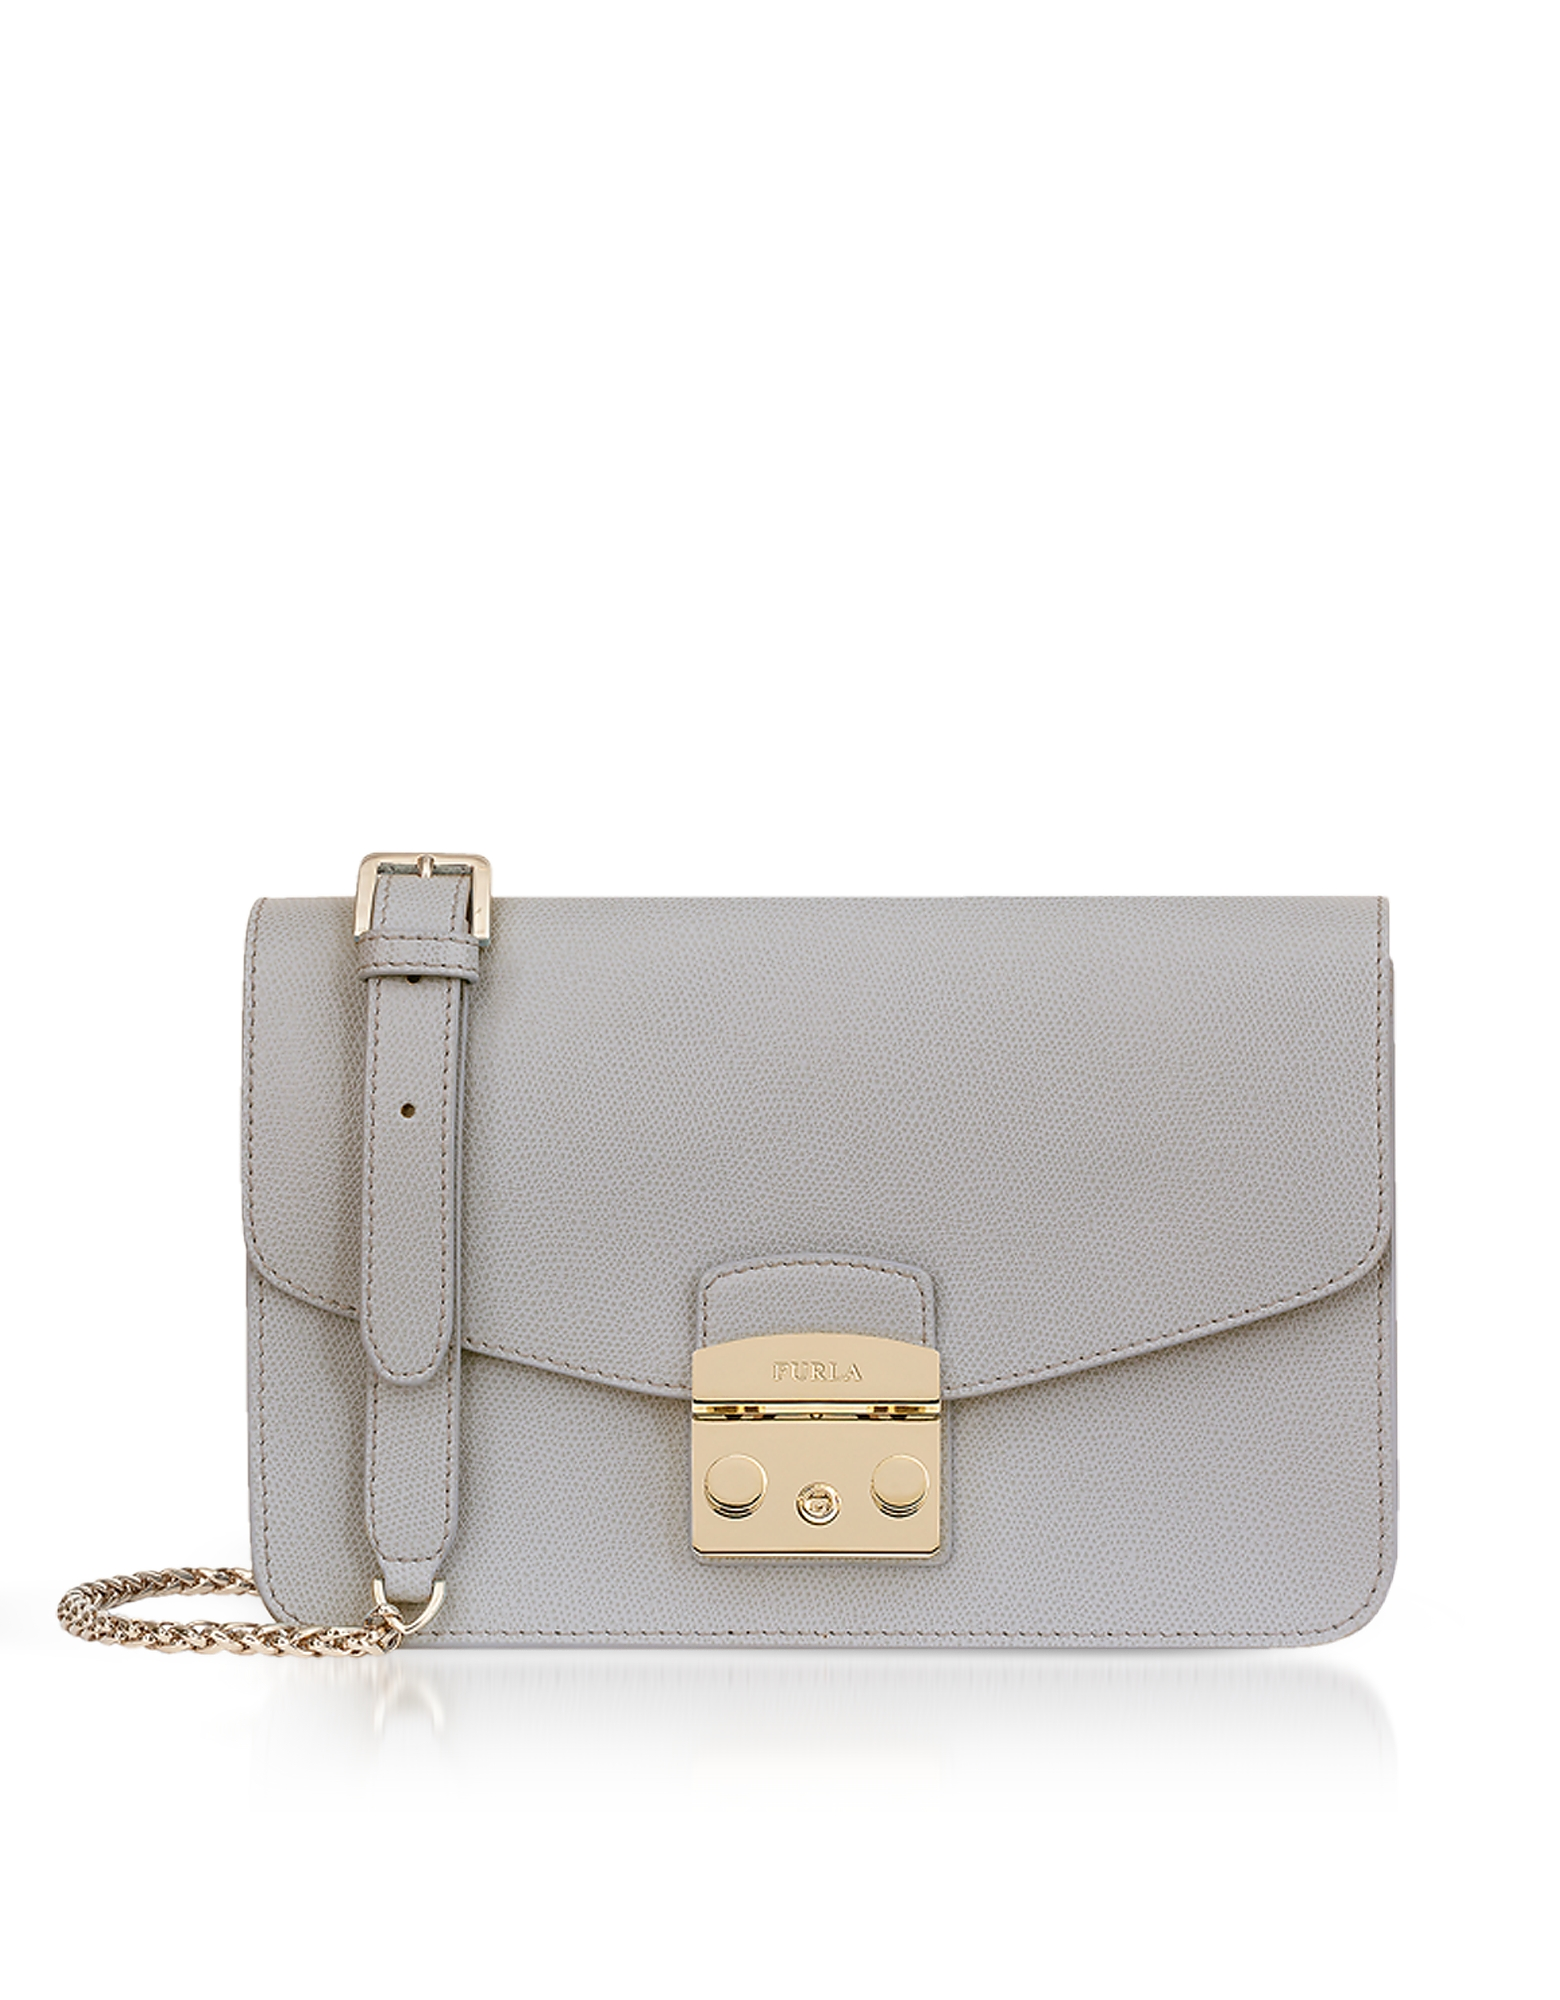 Genuine Leather Metropolis Small Shoulder Bag in Onice E Grey/Gold